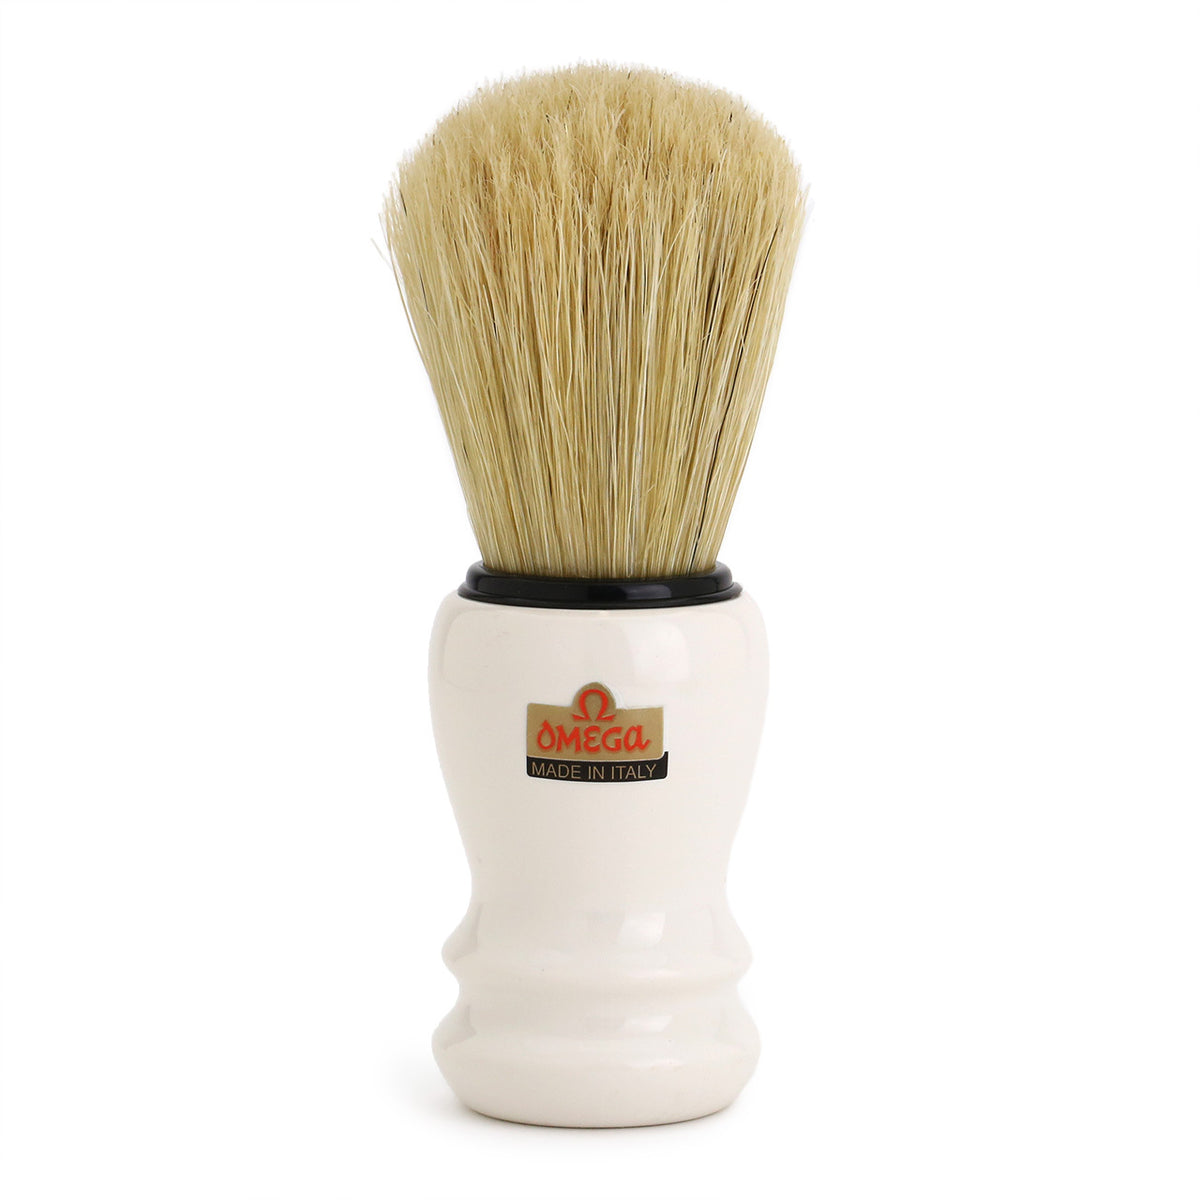 Omega Professional Pure Bristle Shaving Brush 10108 - White